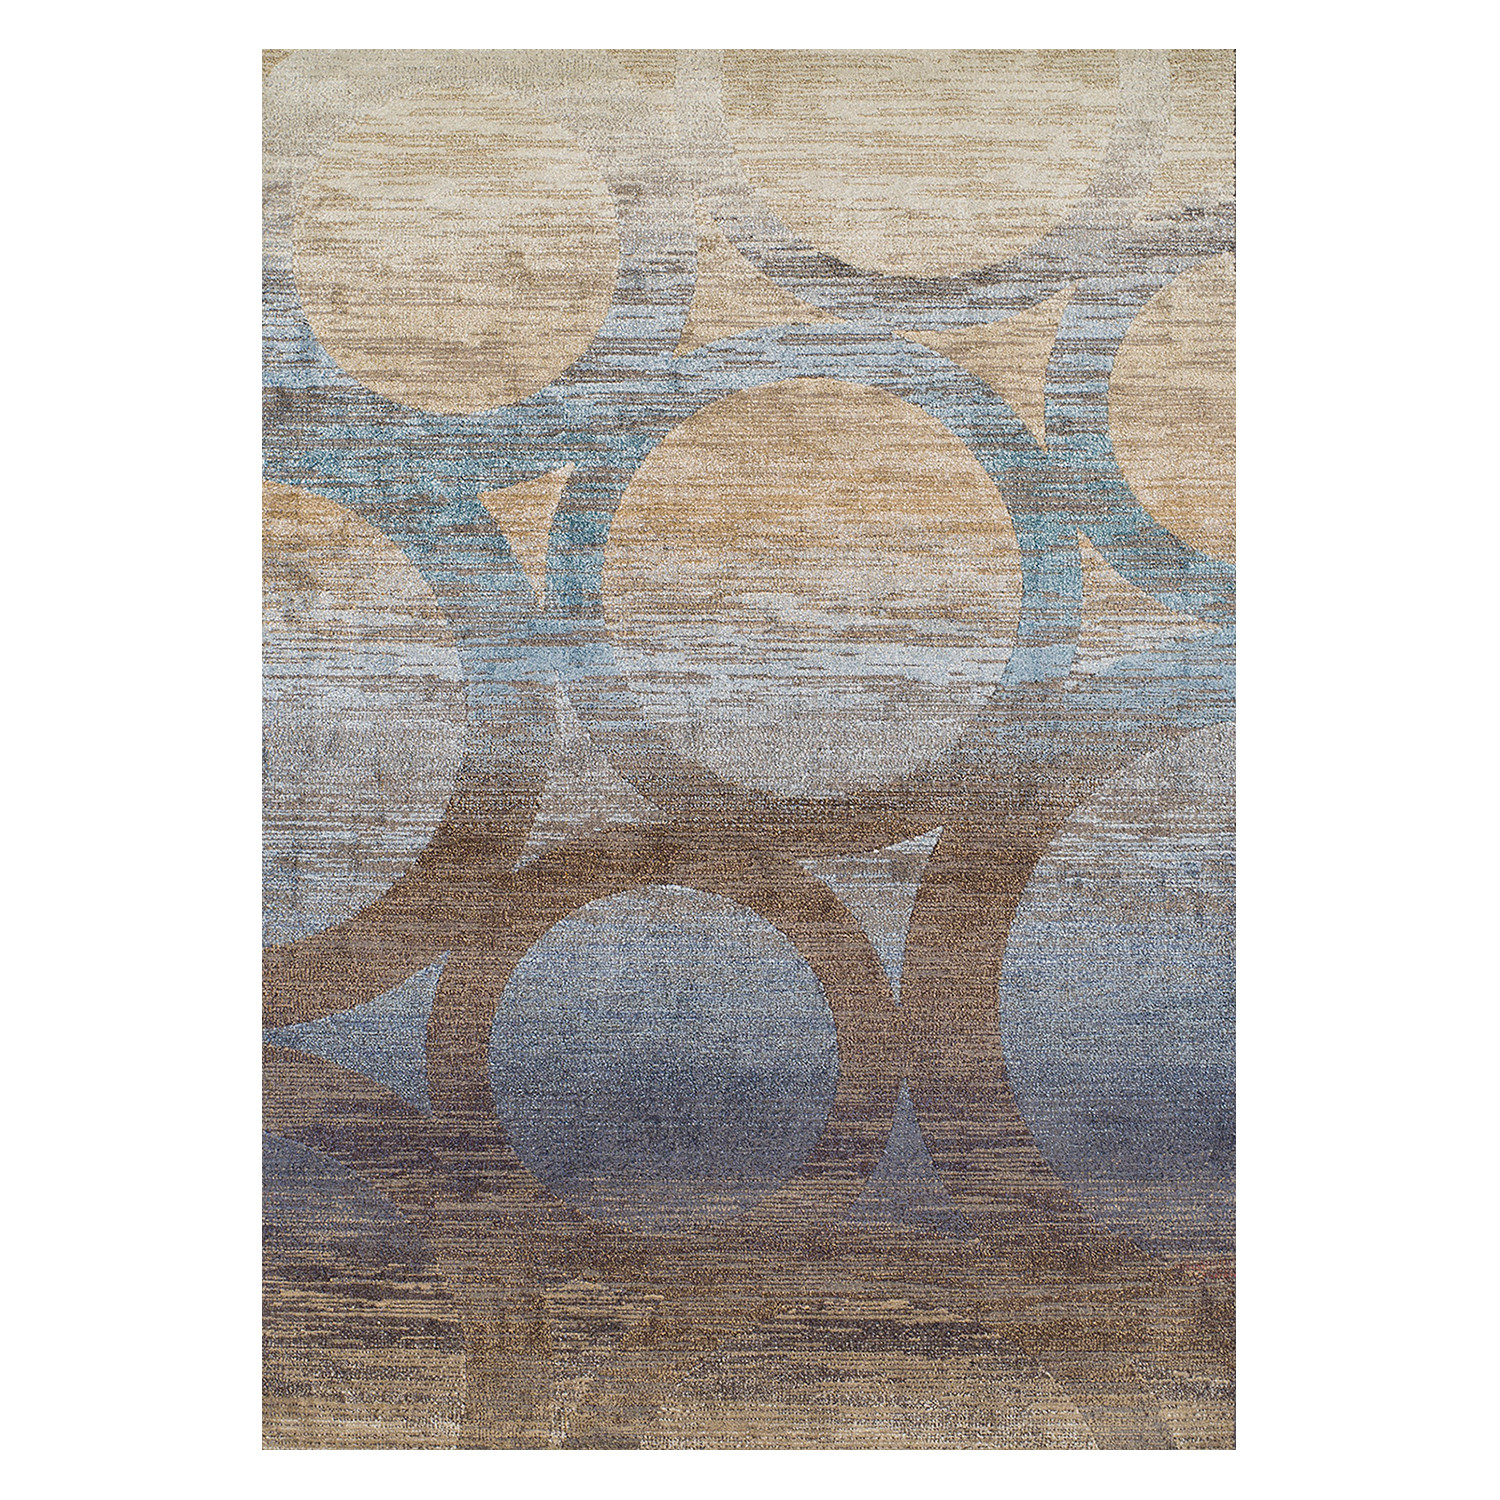 Persian Rugs Wellington: Wellington // Eroded Circles // Brown + Blue Area Rug (5'3